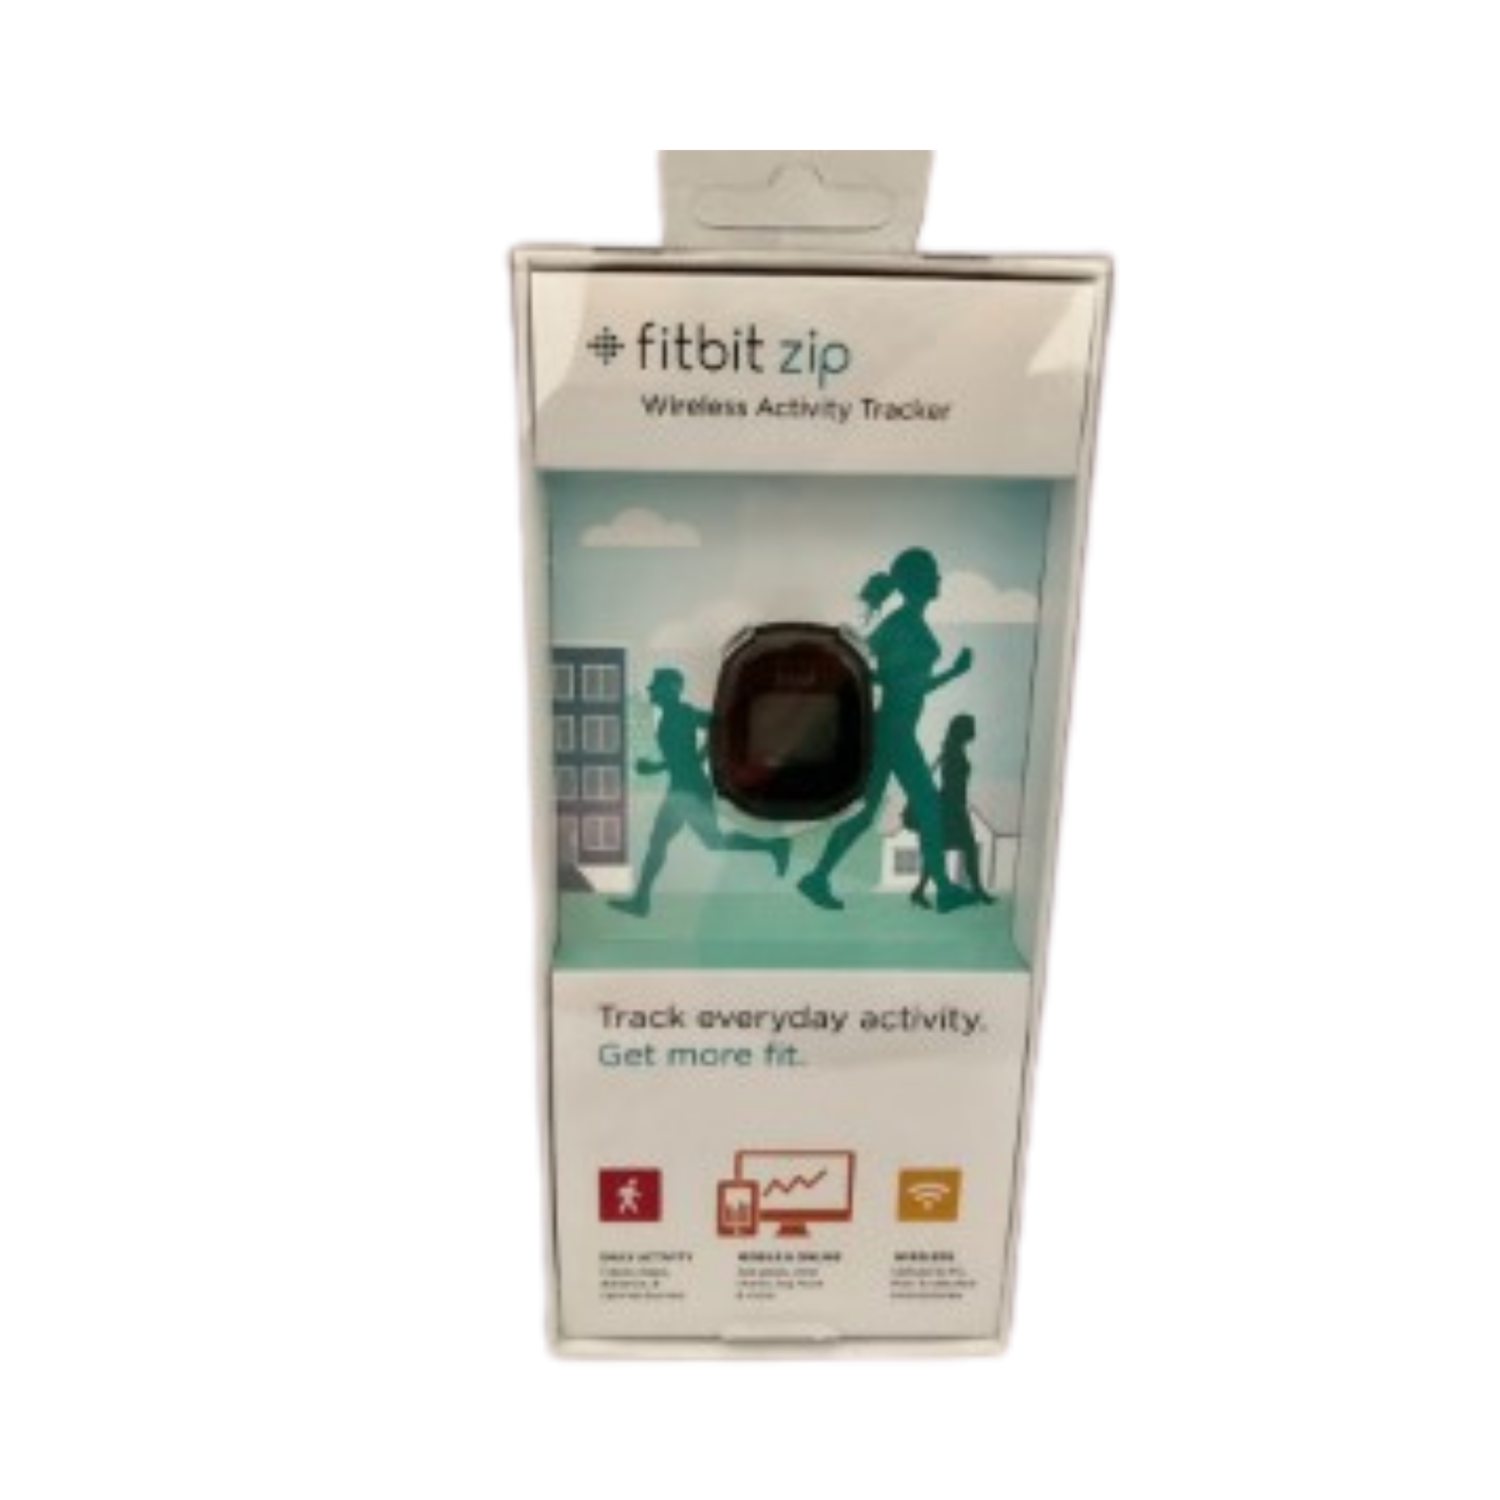 FitBit Wireless Activity Tracker